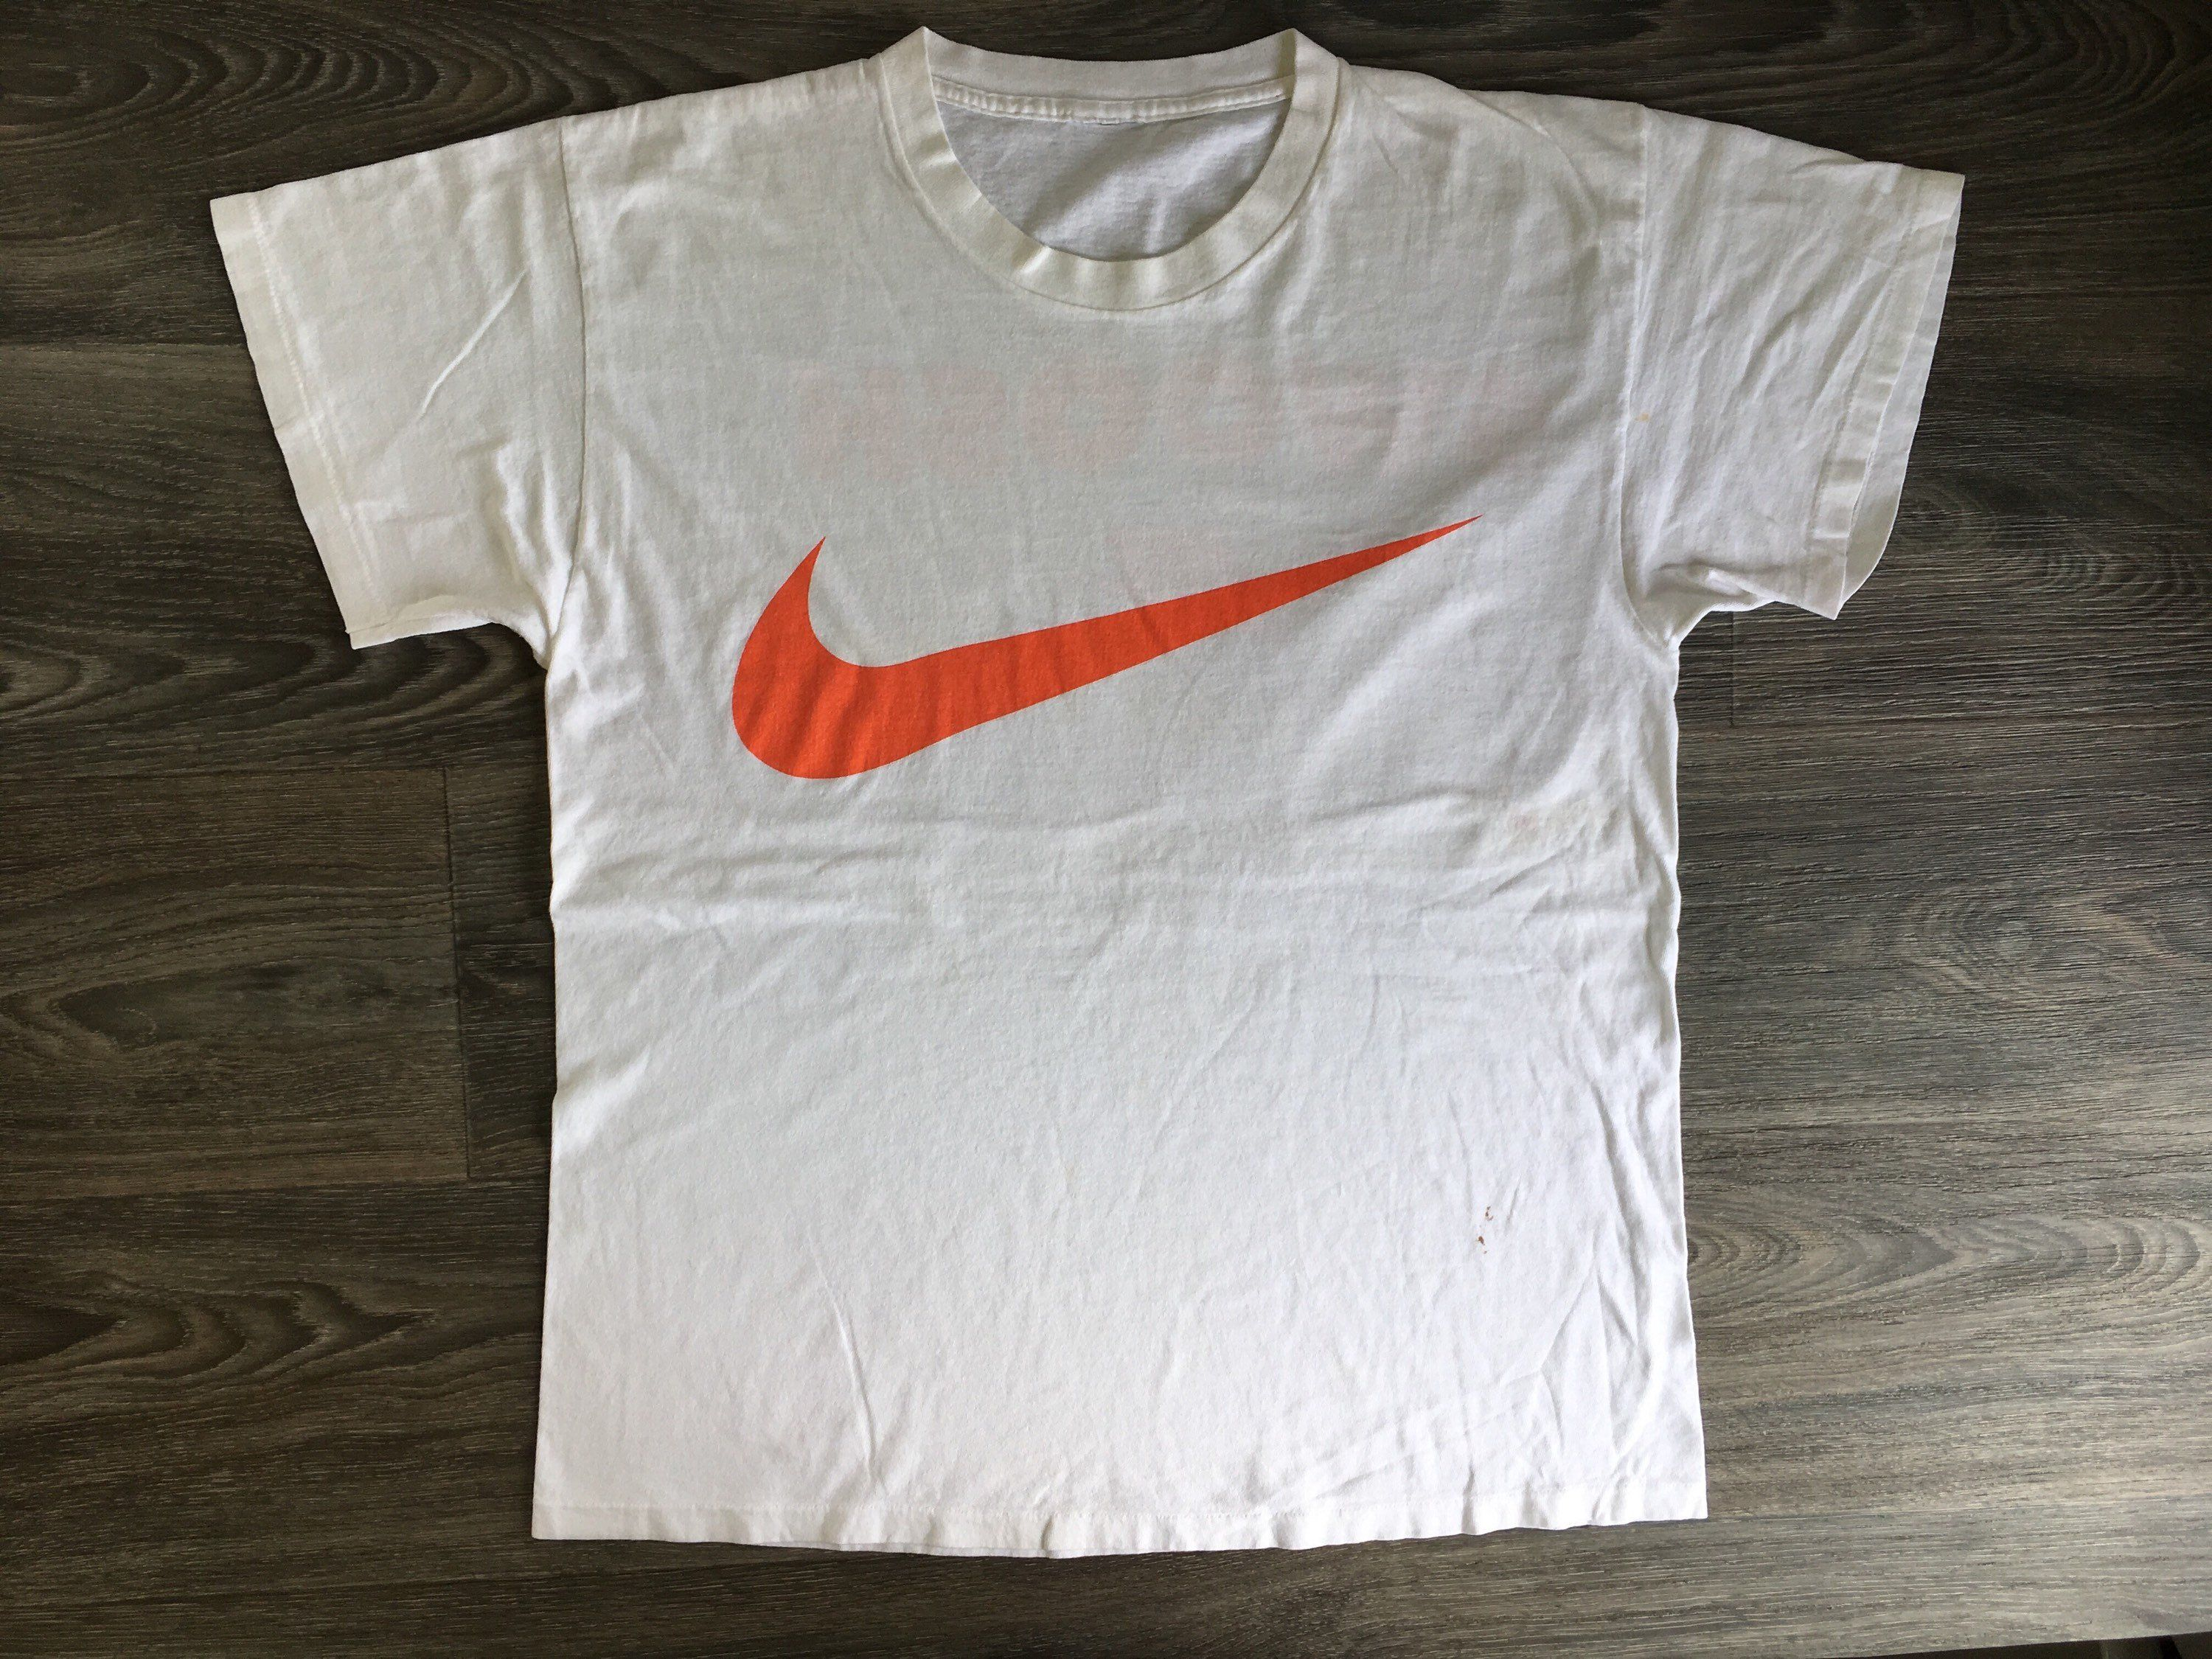 2062345c1bcd6 NIKE Tshirt 90's Vintage Big Swoosh Shirt Giant Orange Double Sided ...